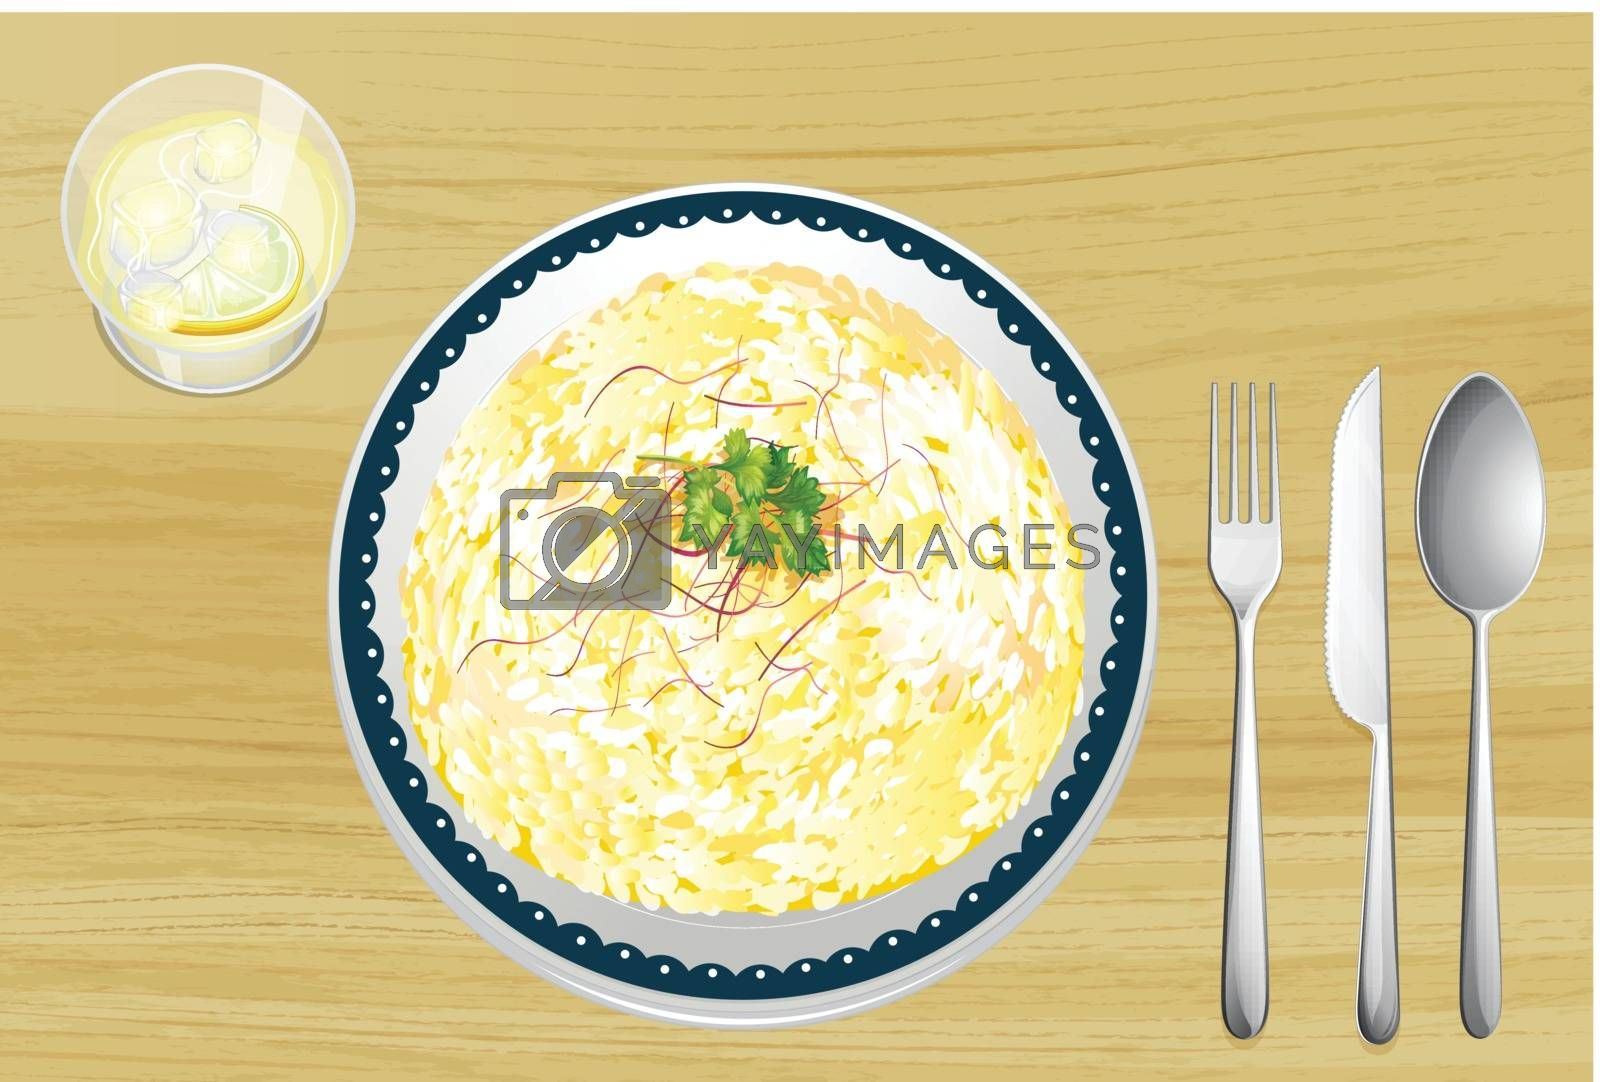 Illustration of a food and a dish on a wooden table